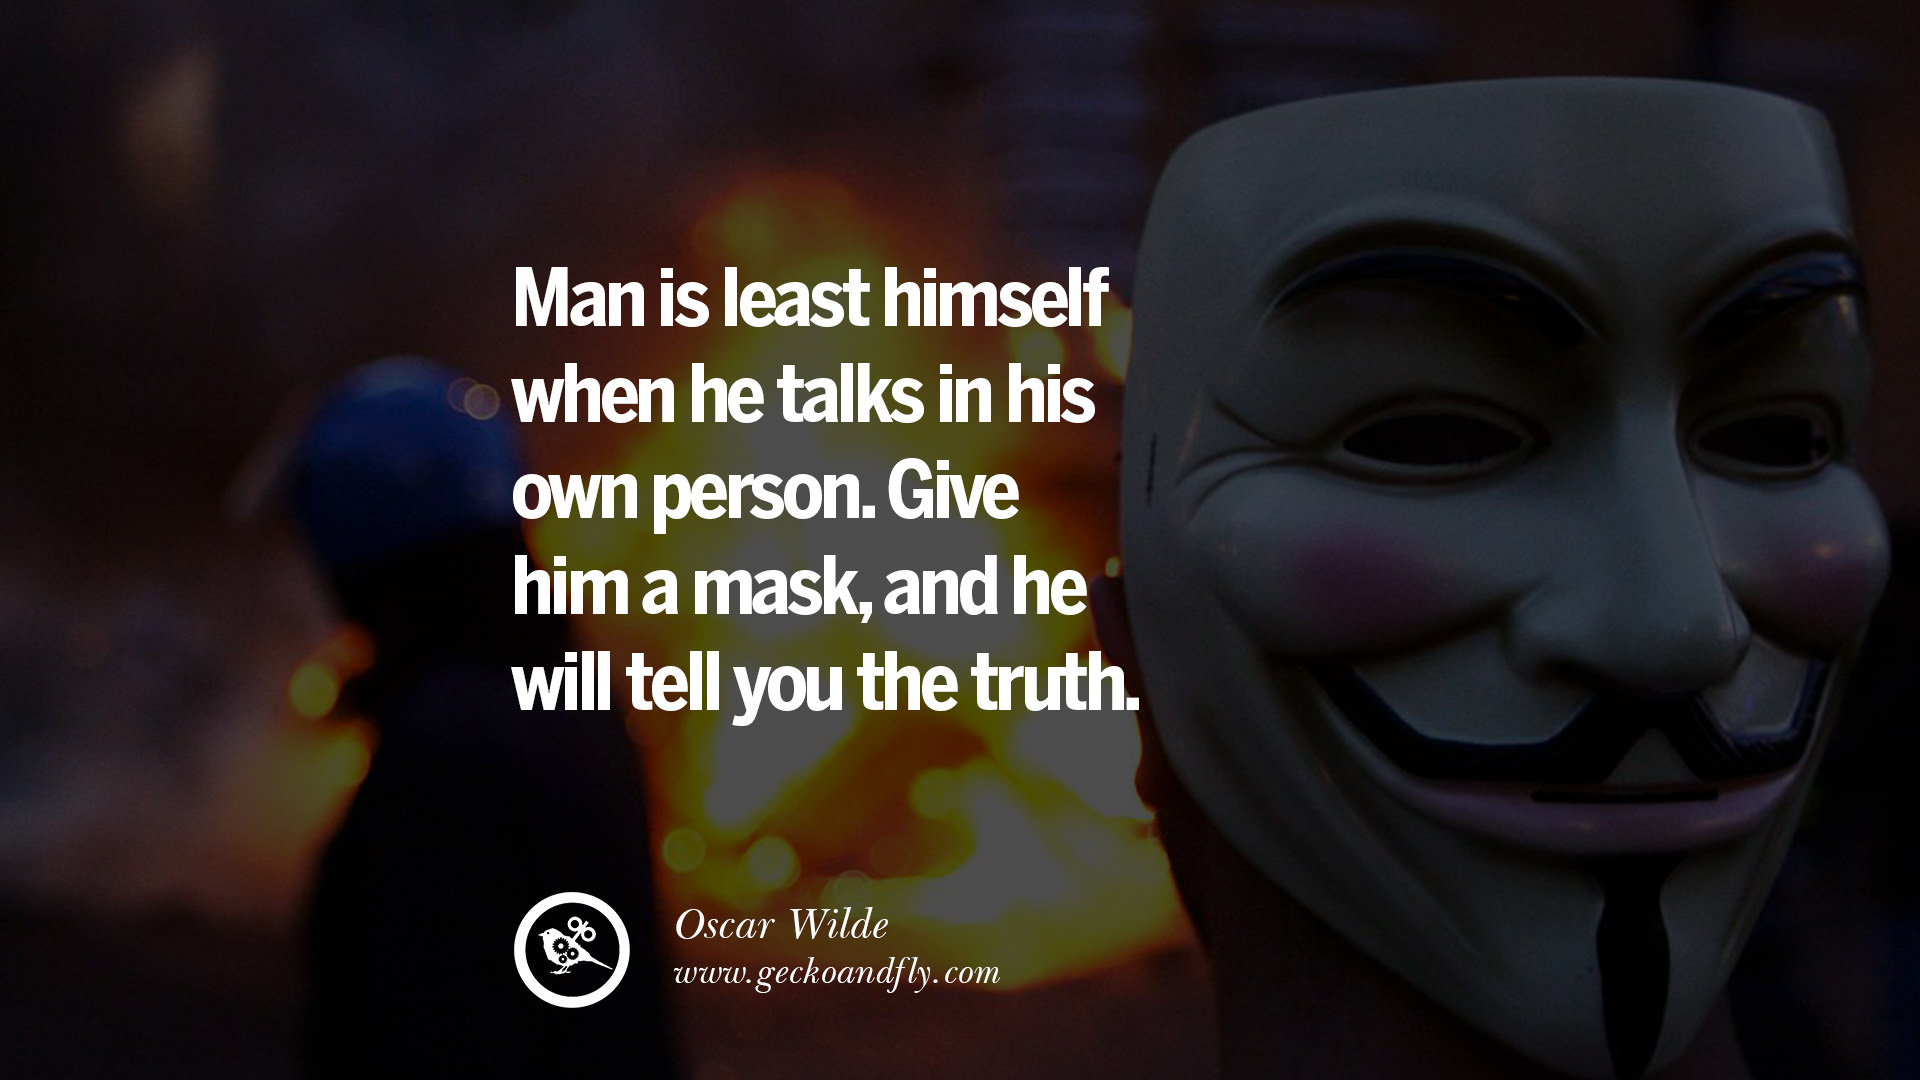 Powerful Love Quotes For Him 20 Quotes On Wearing A Mask Lying And Hiding Oneself